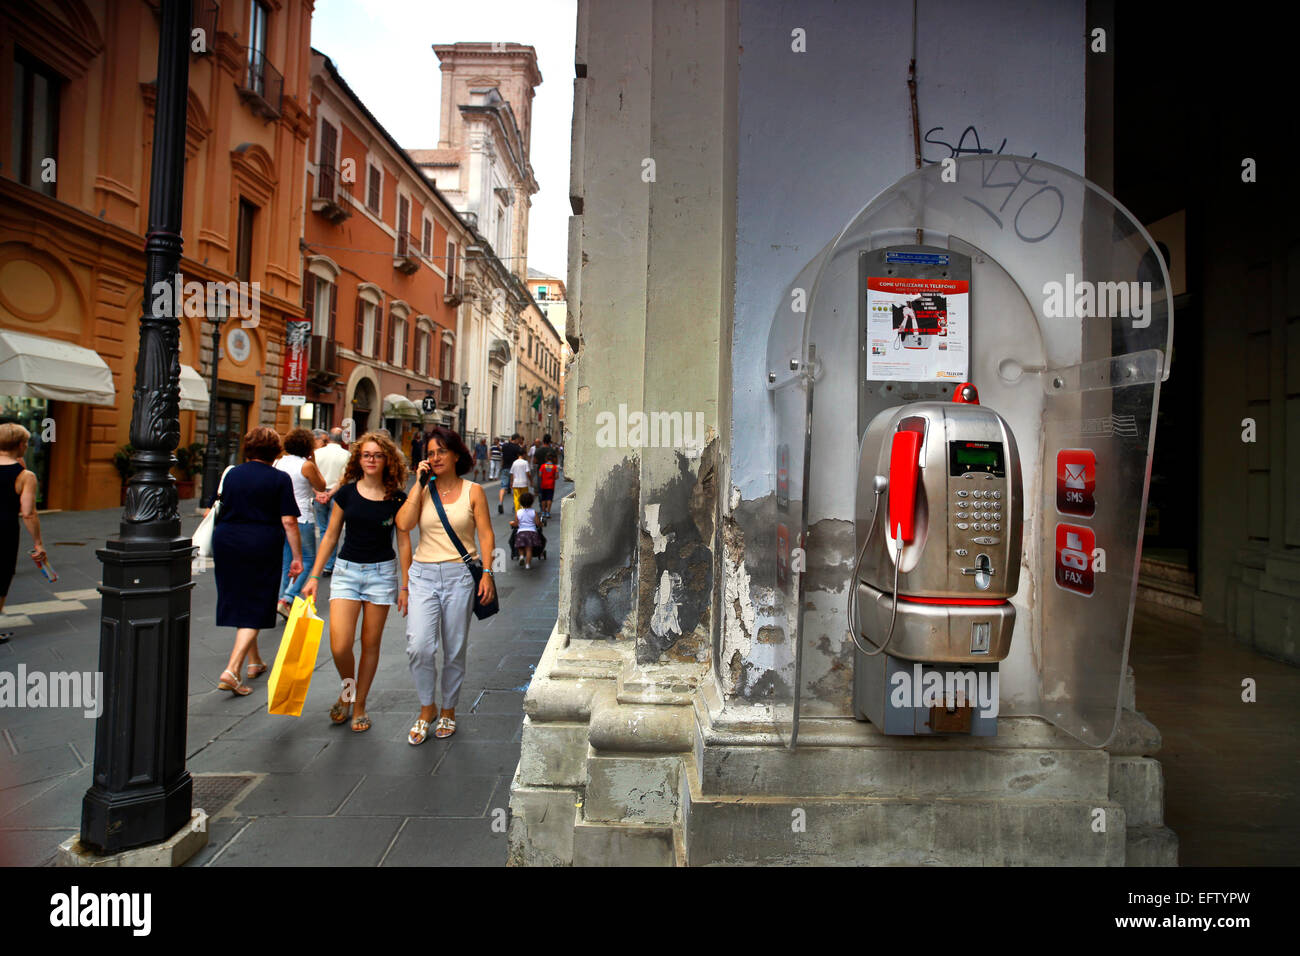 Telecom Italia payphone in Chieti, Italy. EDITORIAL USE ONLY. - Stock Image